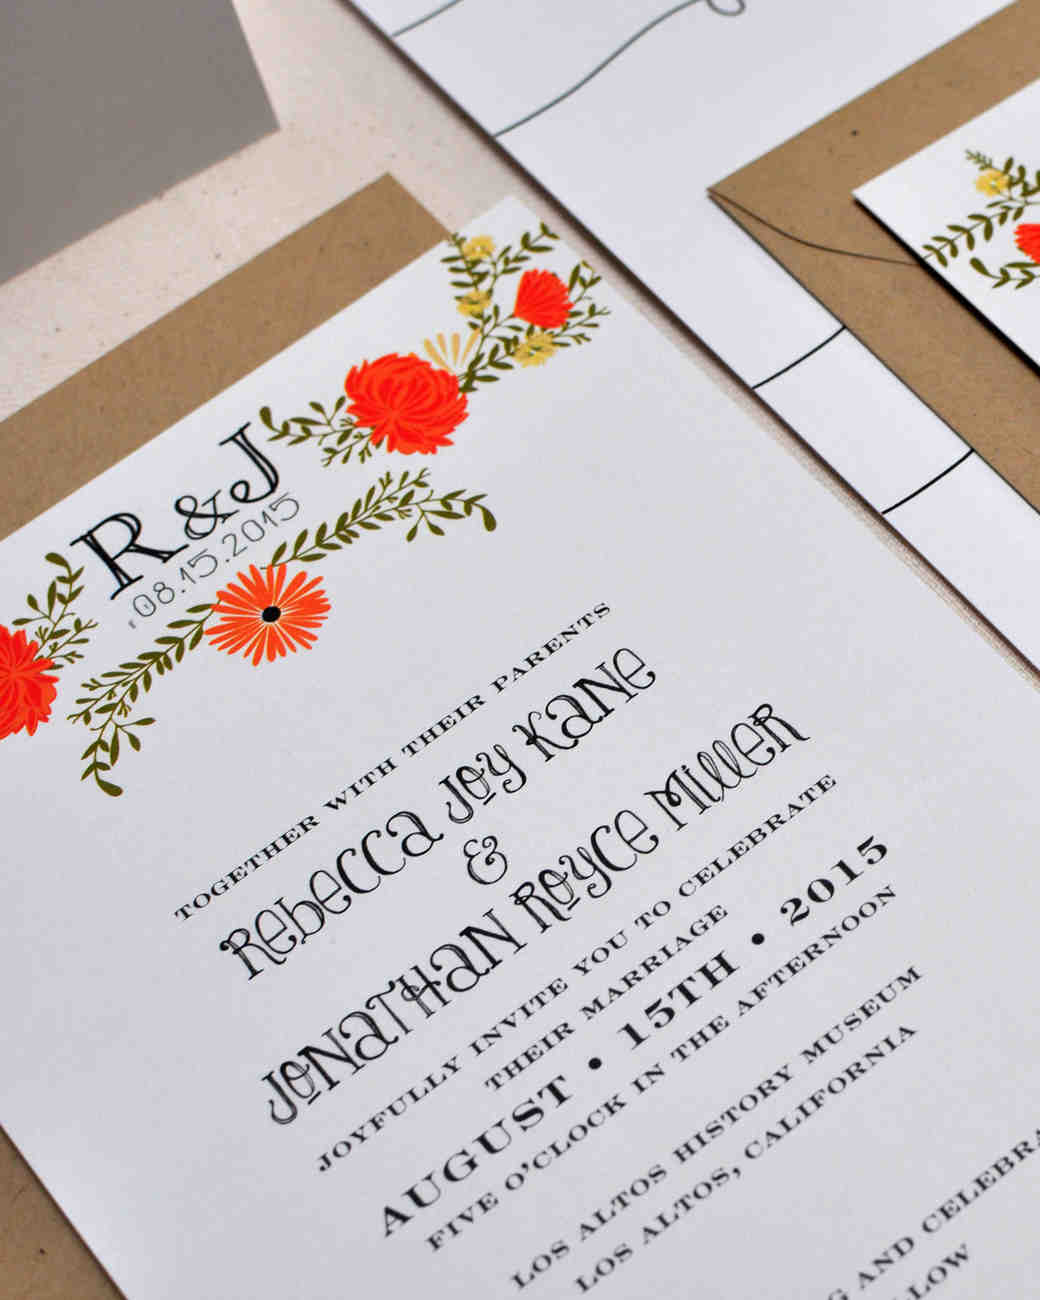 Formal Attire On Wedding Invitation: 8 Details To Include When Wording Your Wedding Invitation